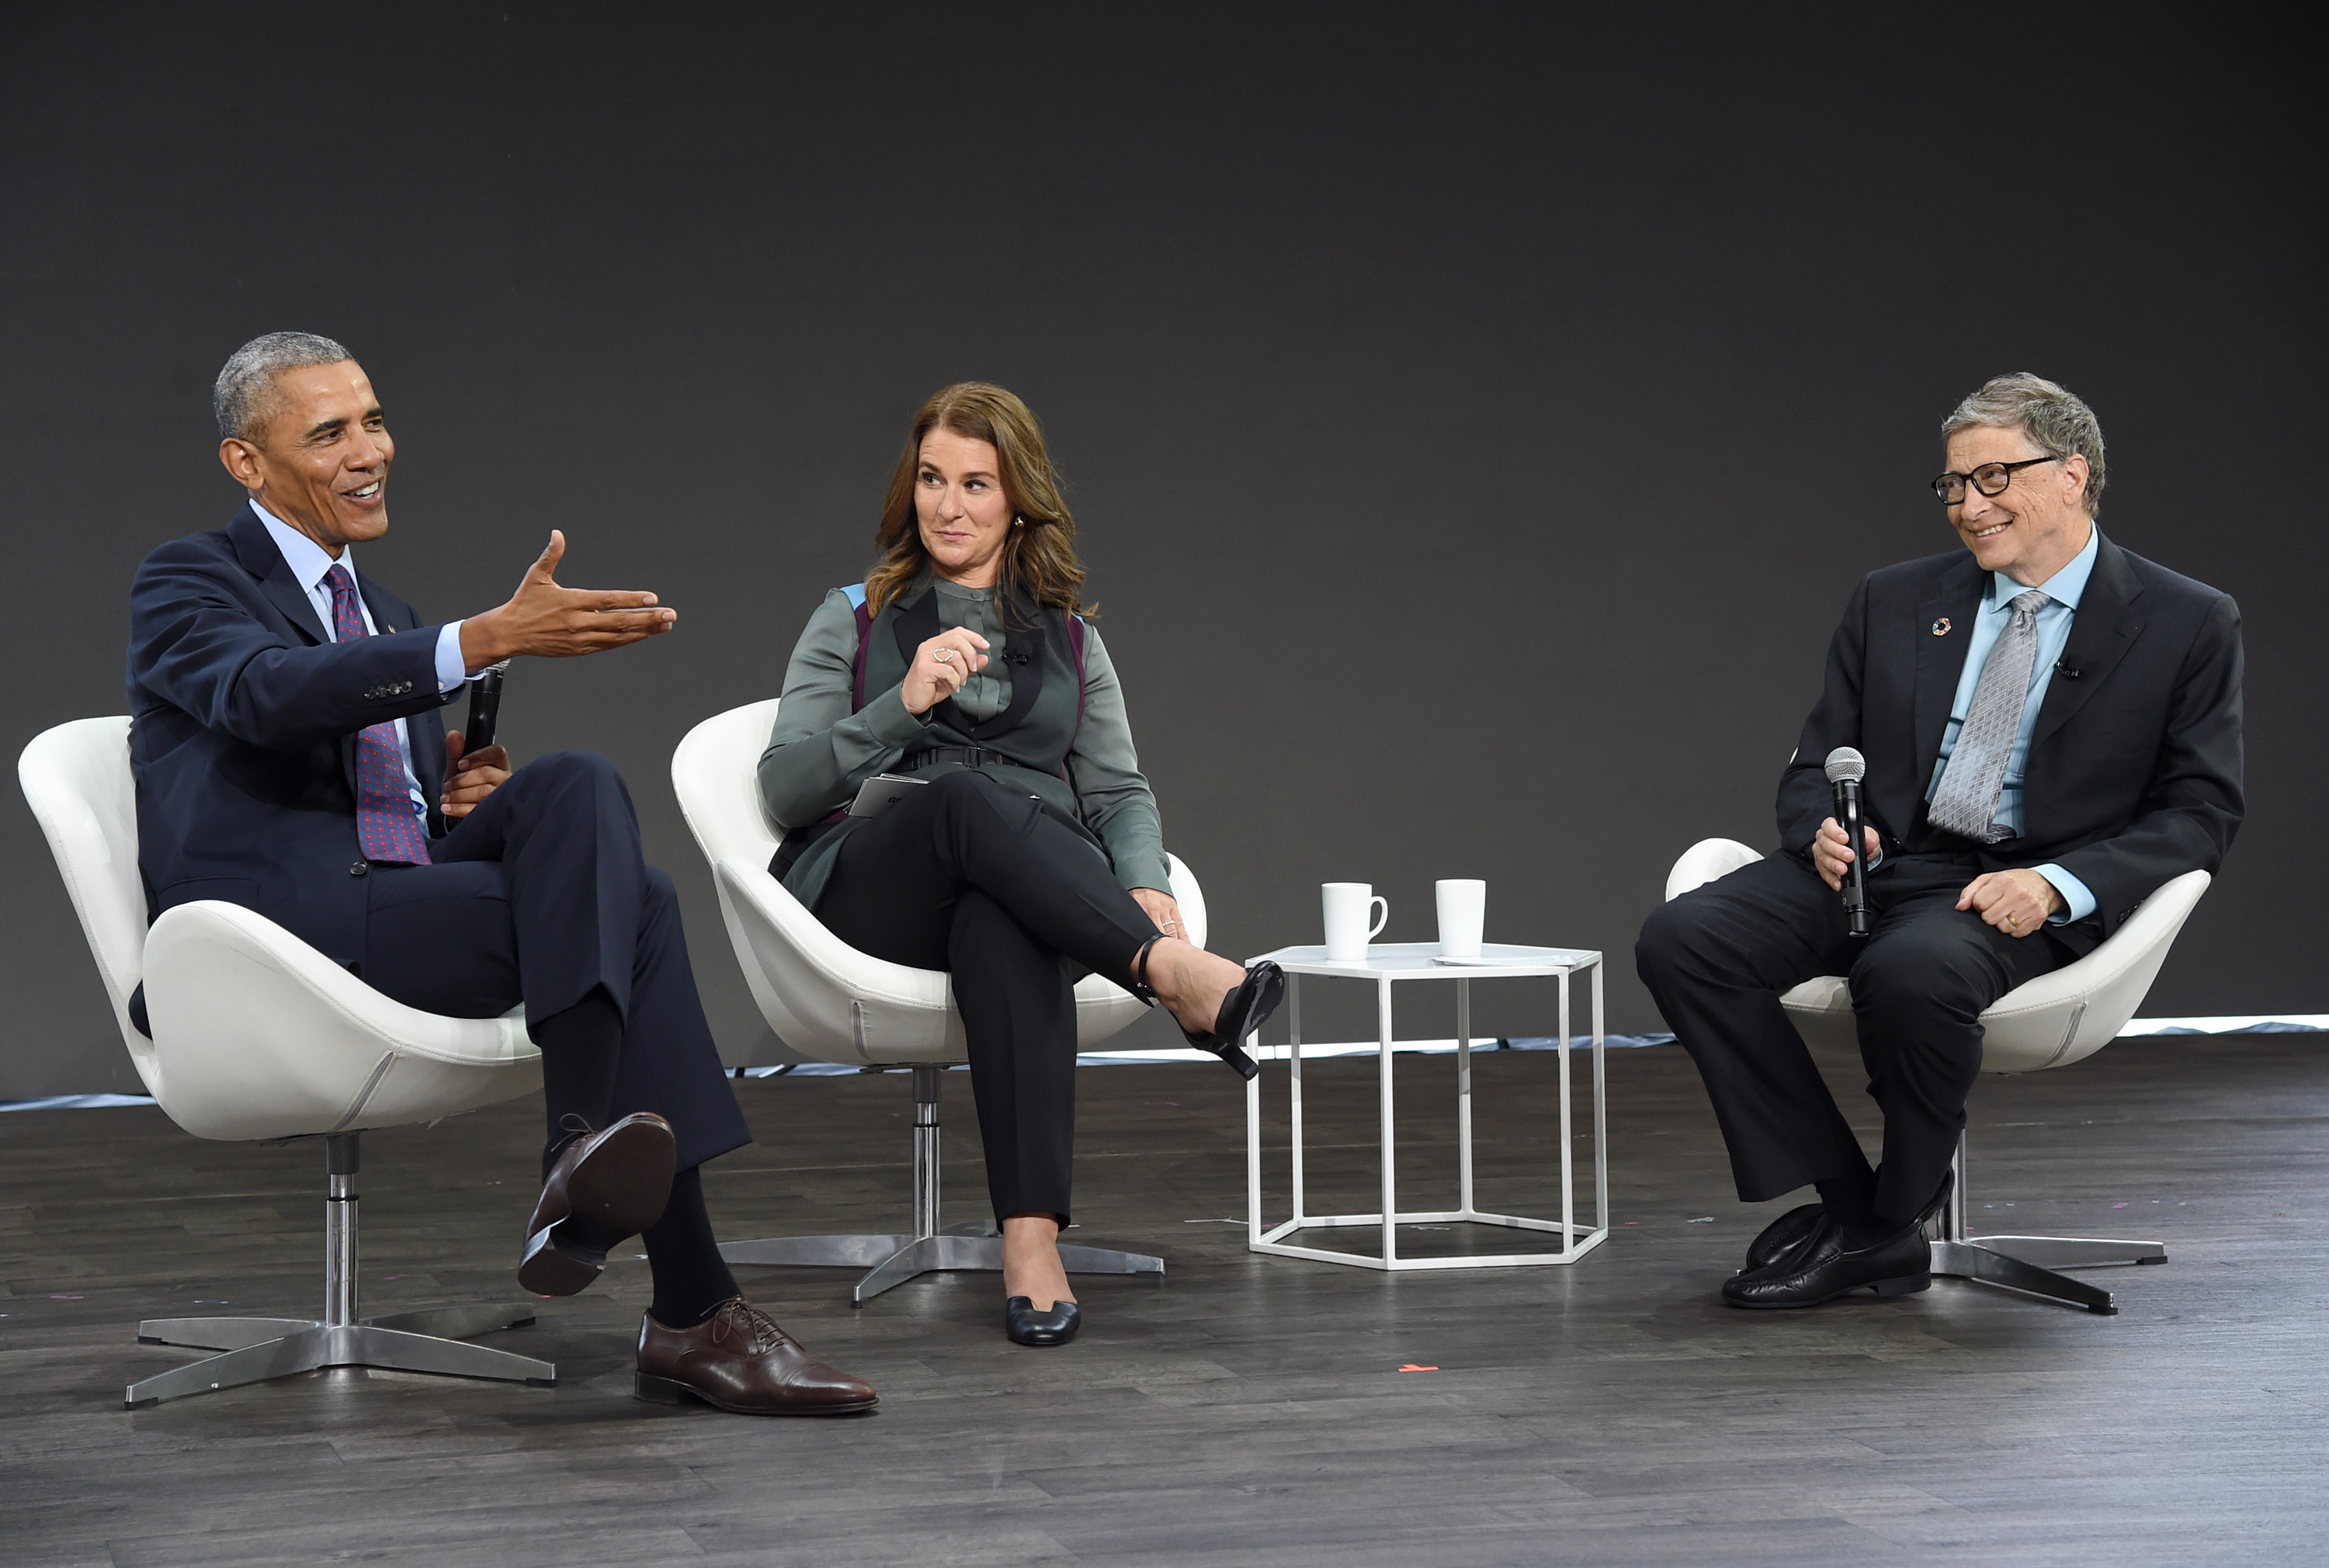 President Barack Obama, Melinda Gates and Bill Gates speak at Goalkeepers 2017, at Jazz at Lincoln Center on September 20, 2017 in New York City.  Goalkeepers is organized by the Bill & Melinda Gates Foundation to highlight progress against global poverty and disease, showcase solutions to help advance the Sustainable Development Goals (or Global Goals) and foster bold leadership to help accelerate the path to a more prosperous, healthy and just future.